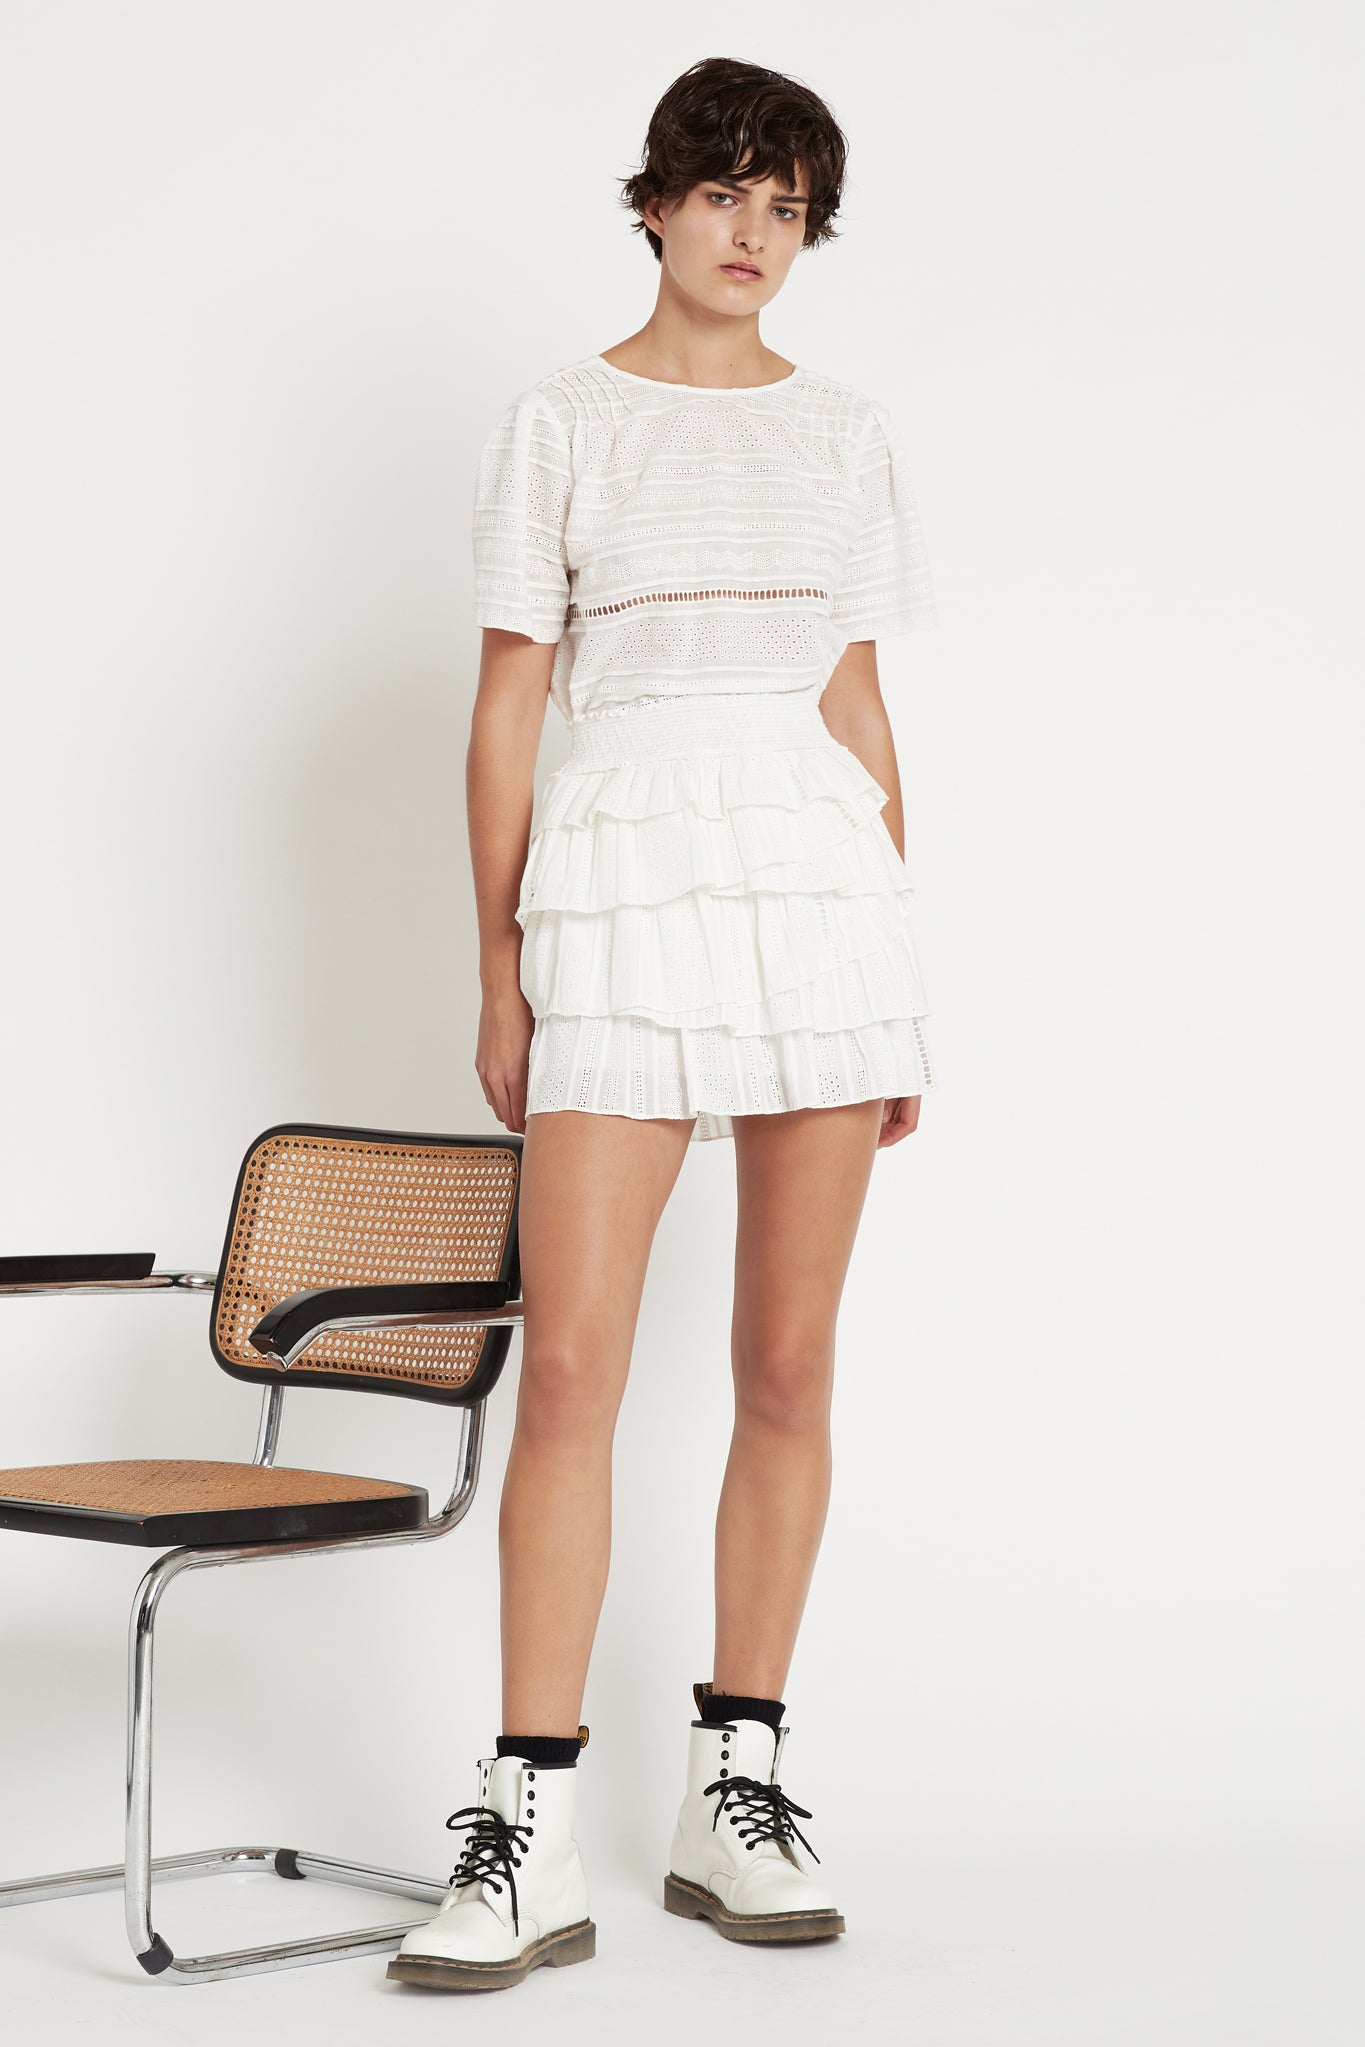 Evans Ruffle Skirt Outfit View